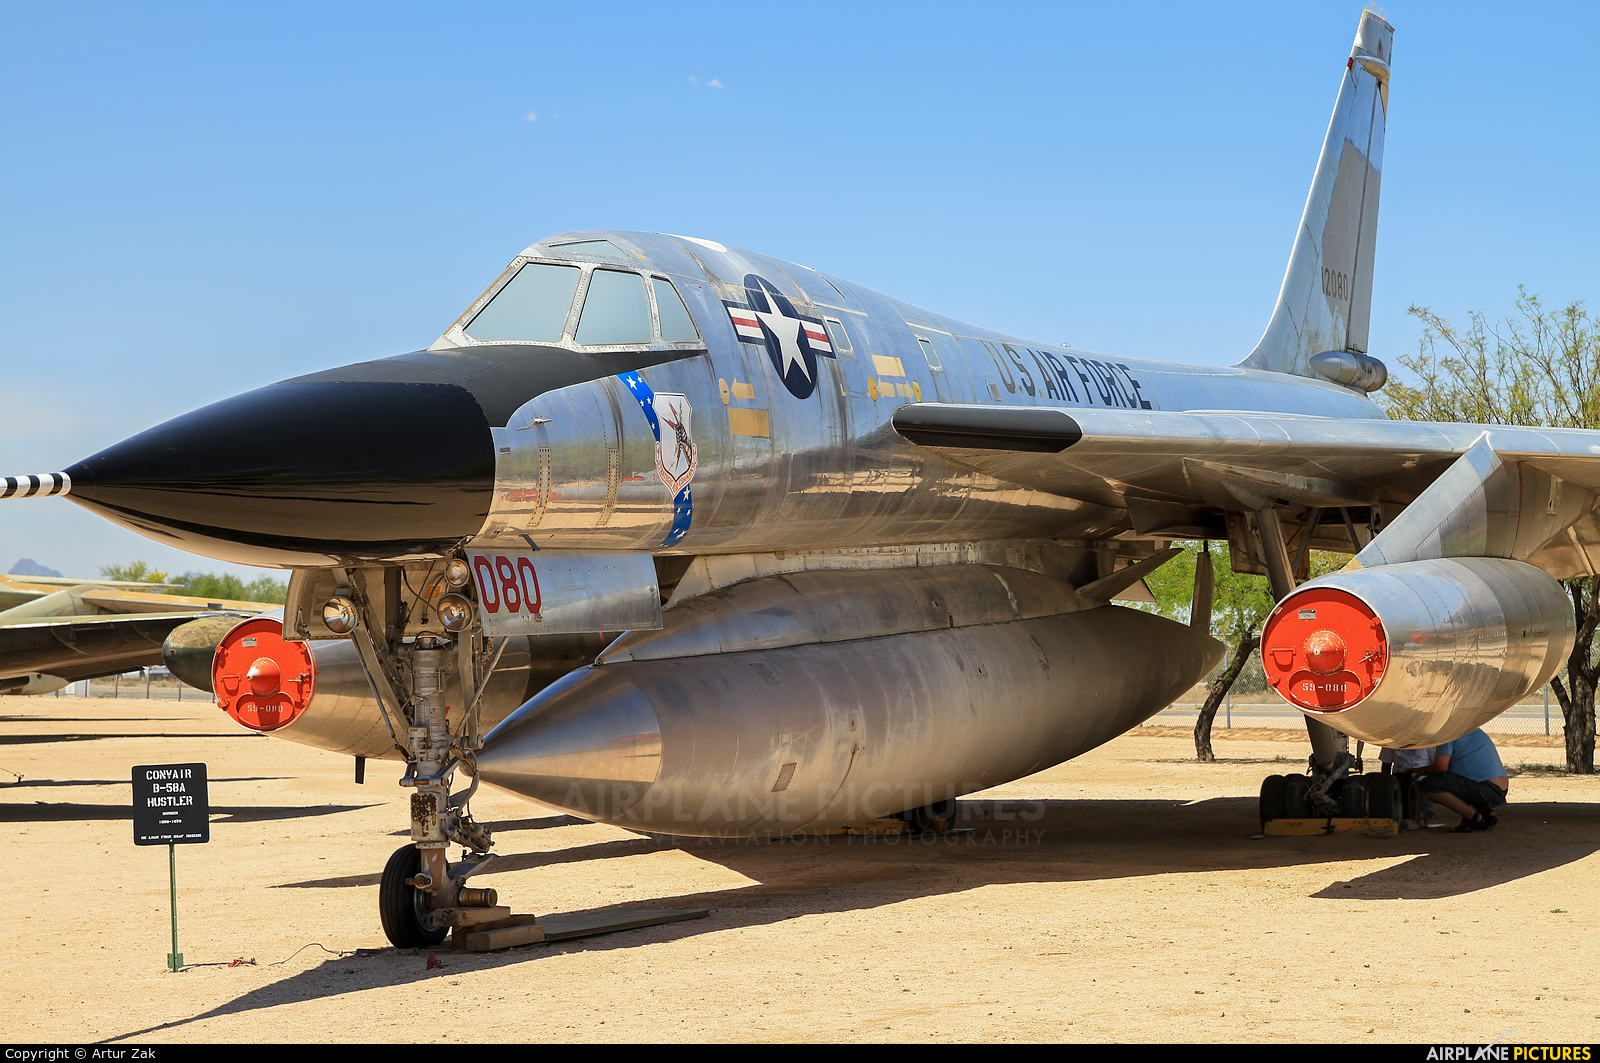 USA - Air Force 61-2080 aircraft at Tucson - Pima Air & Space Museum